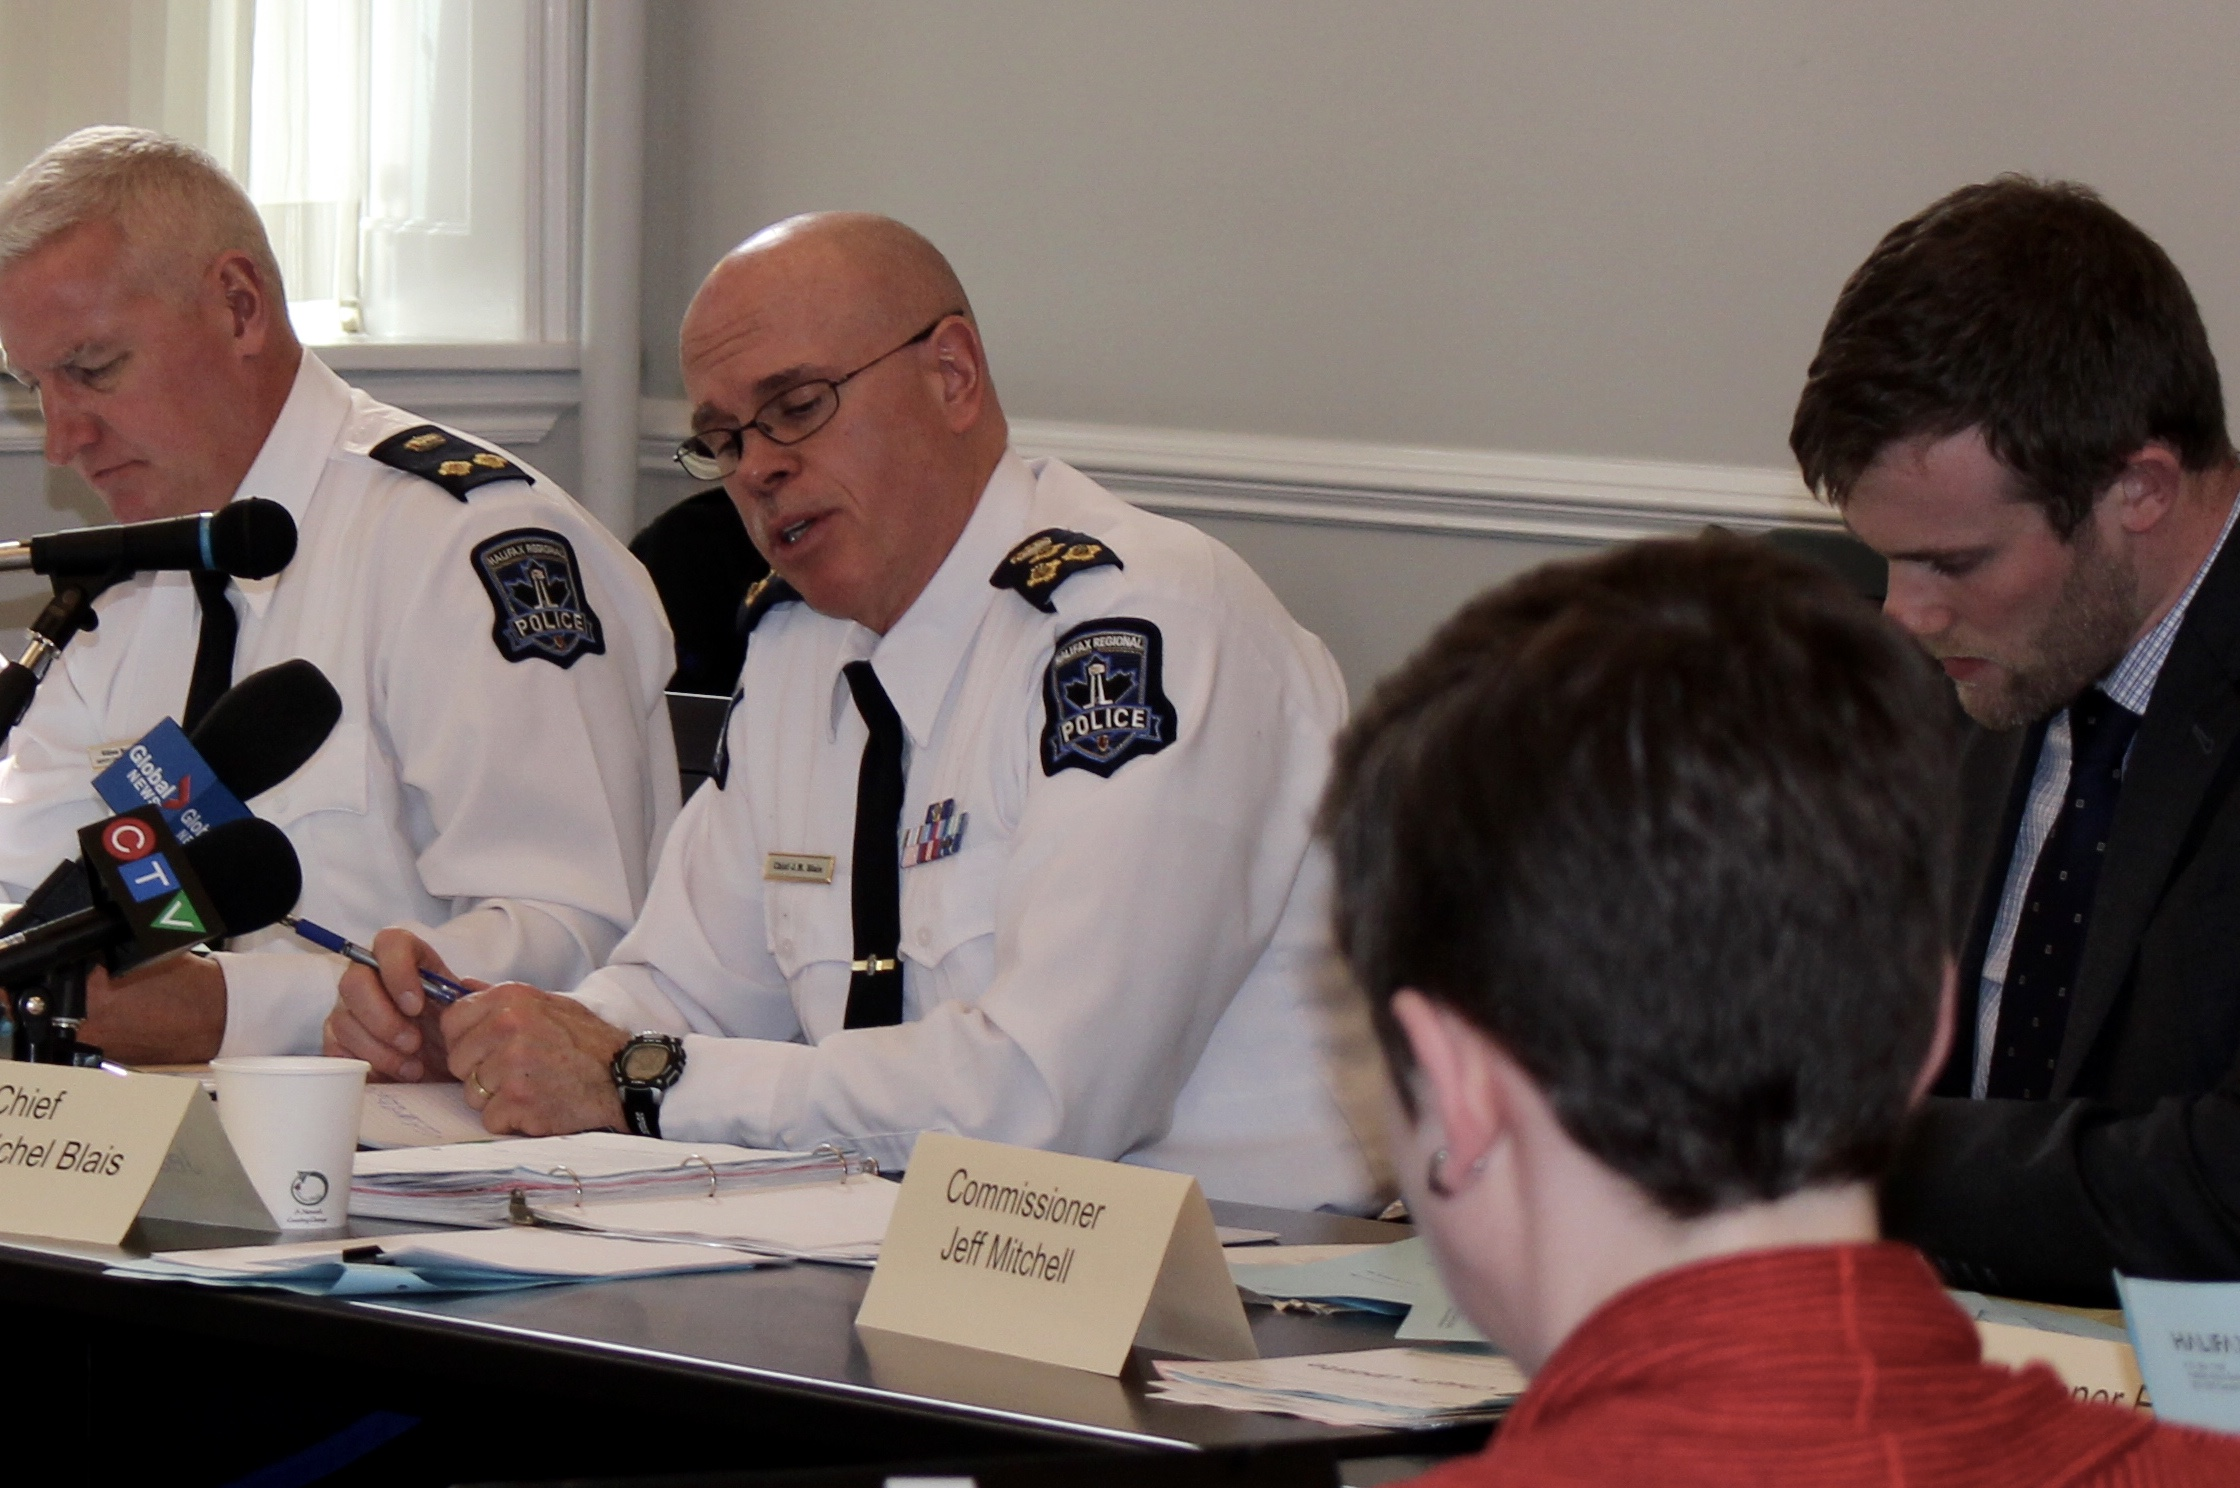 Police Chief jean-Michel Blais talks at a meeting at City Hall on Monday.